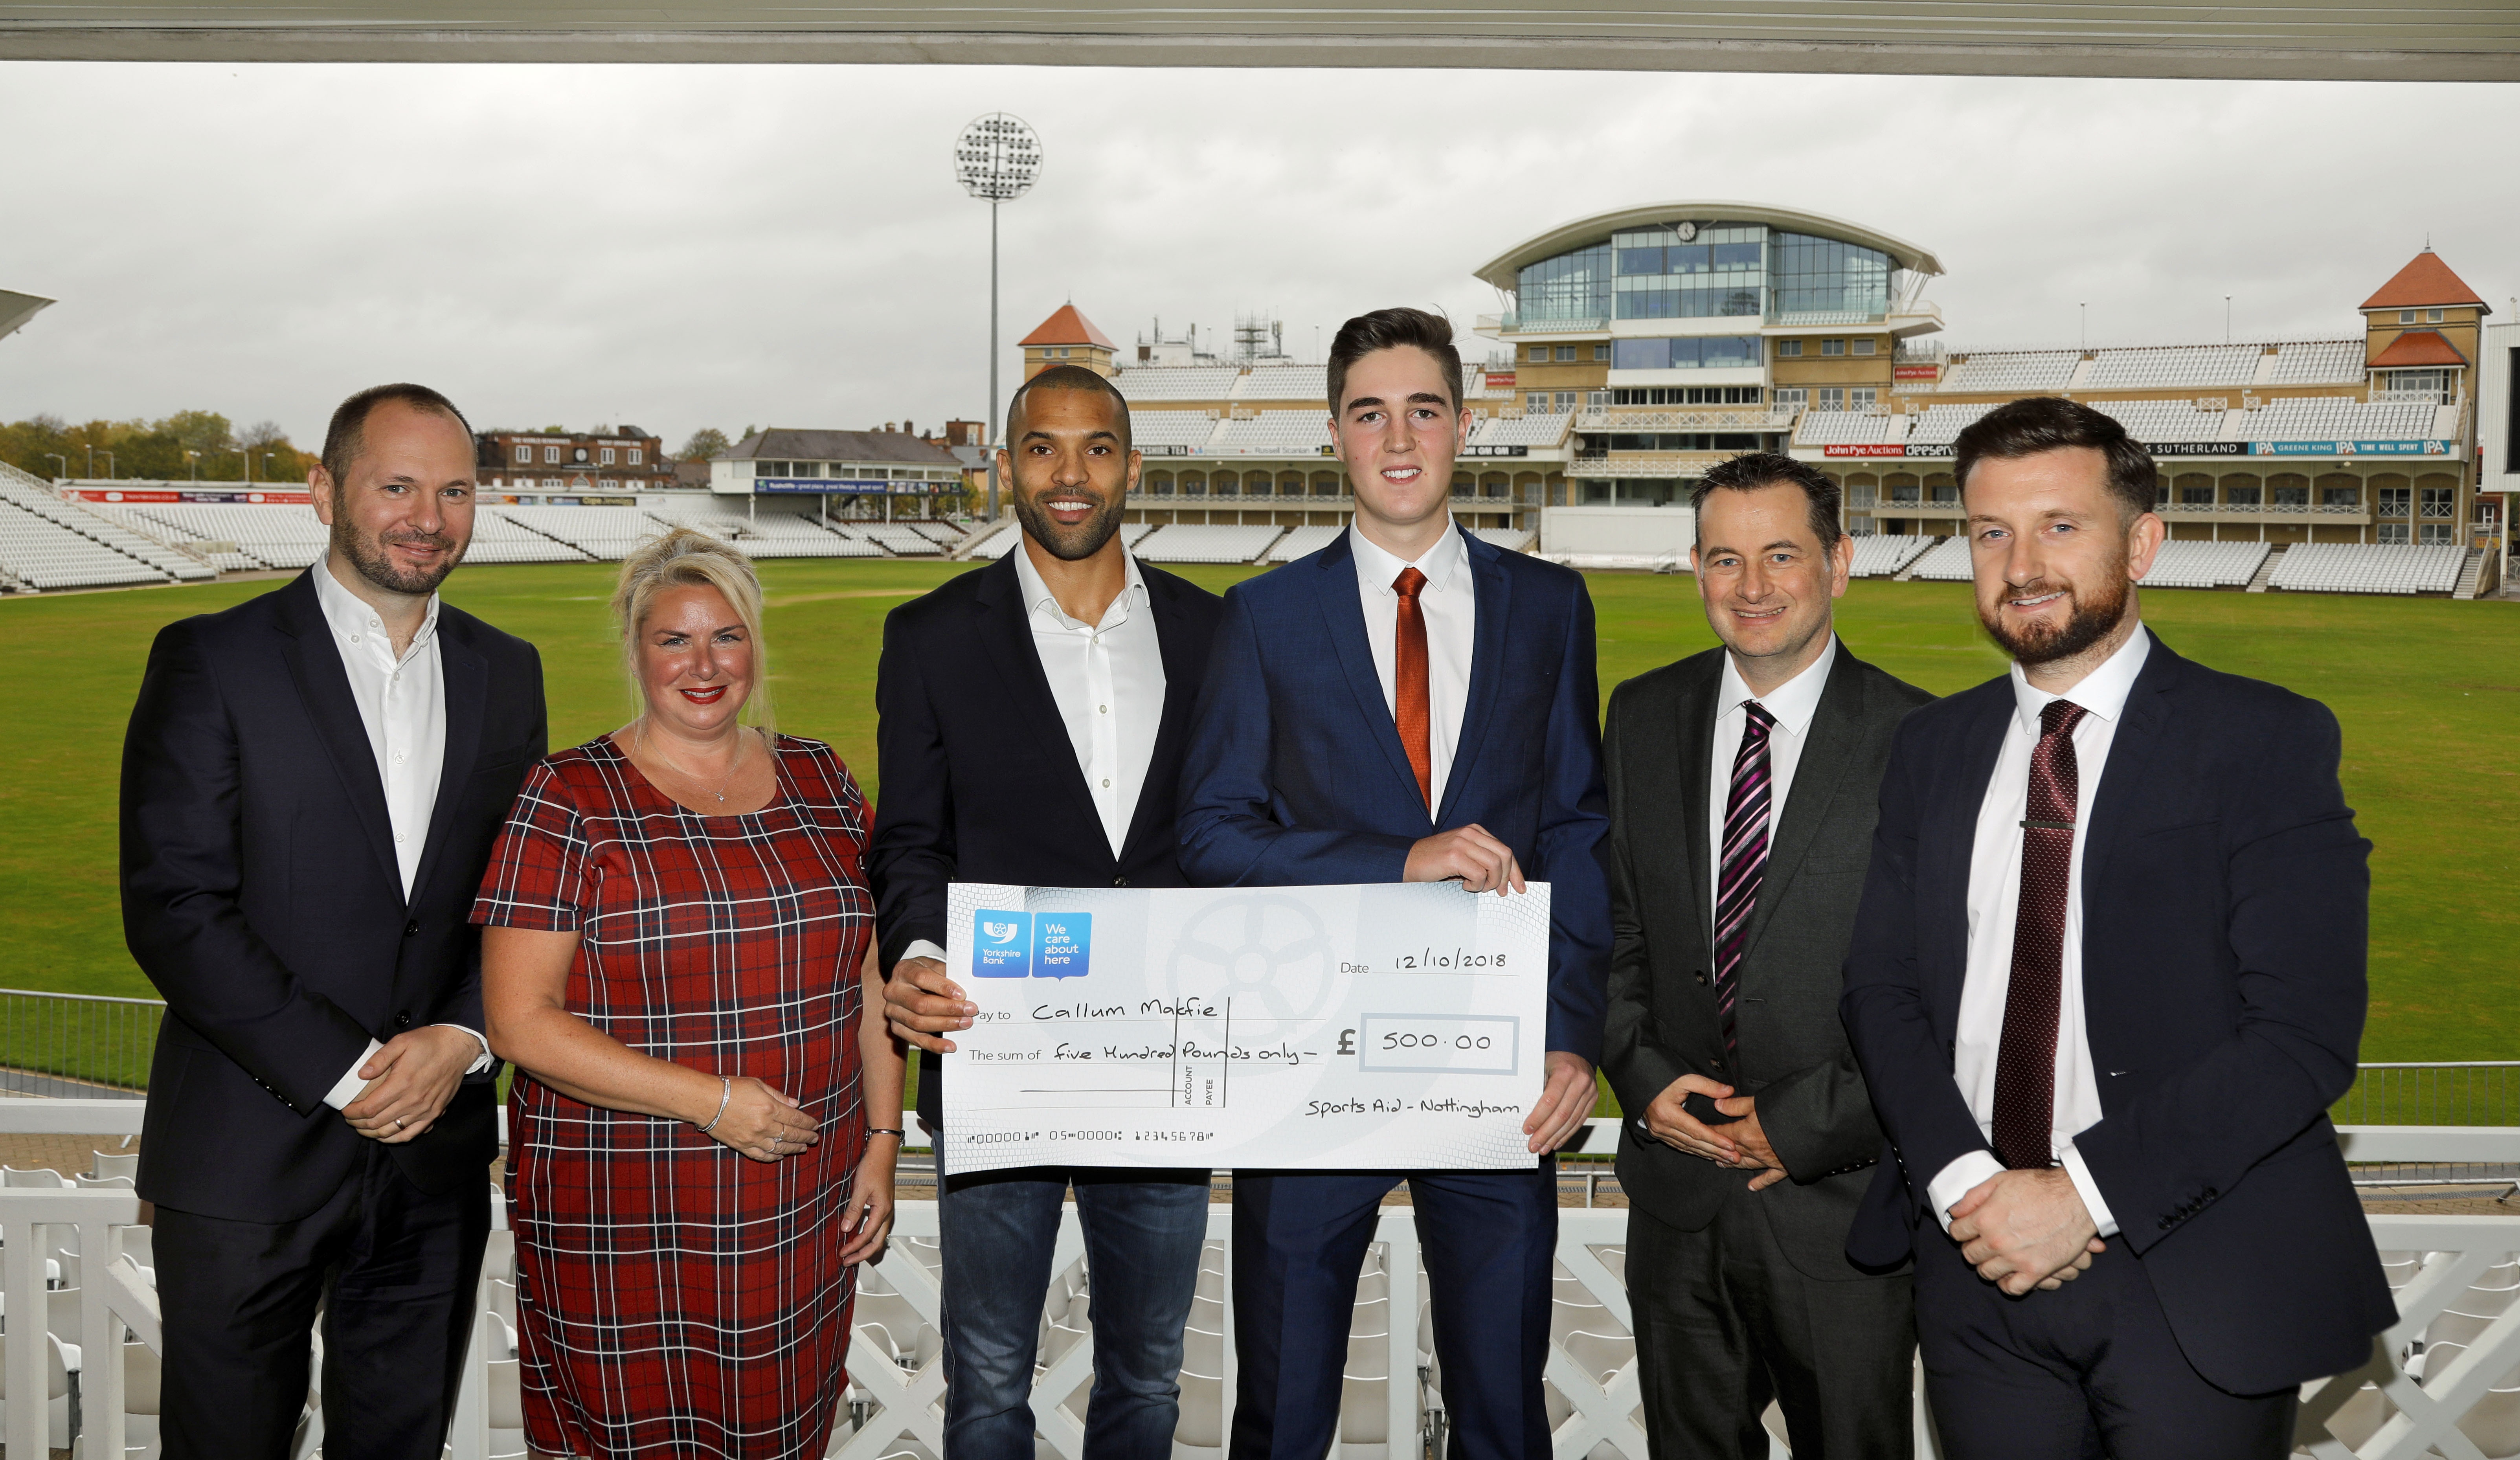 Up-and-coming golf star receives support at SportsAid charity lunch